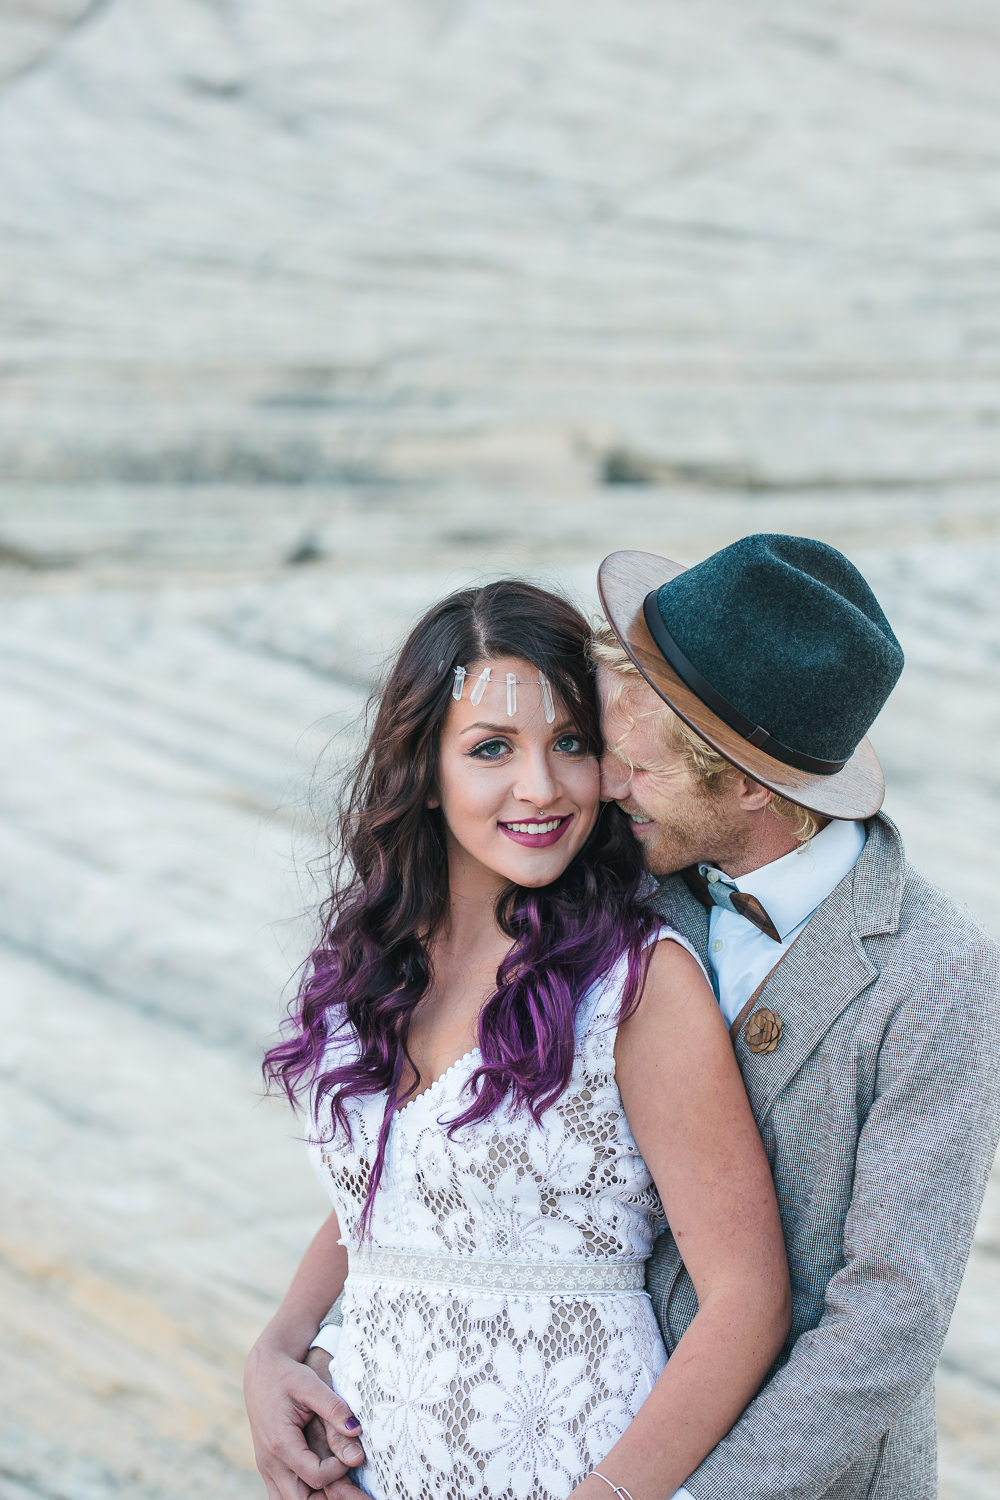 Intimate boho wedding pictures Kyle and Tori Sheppard